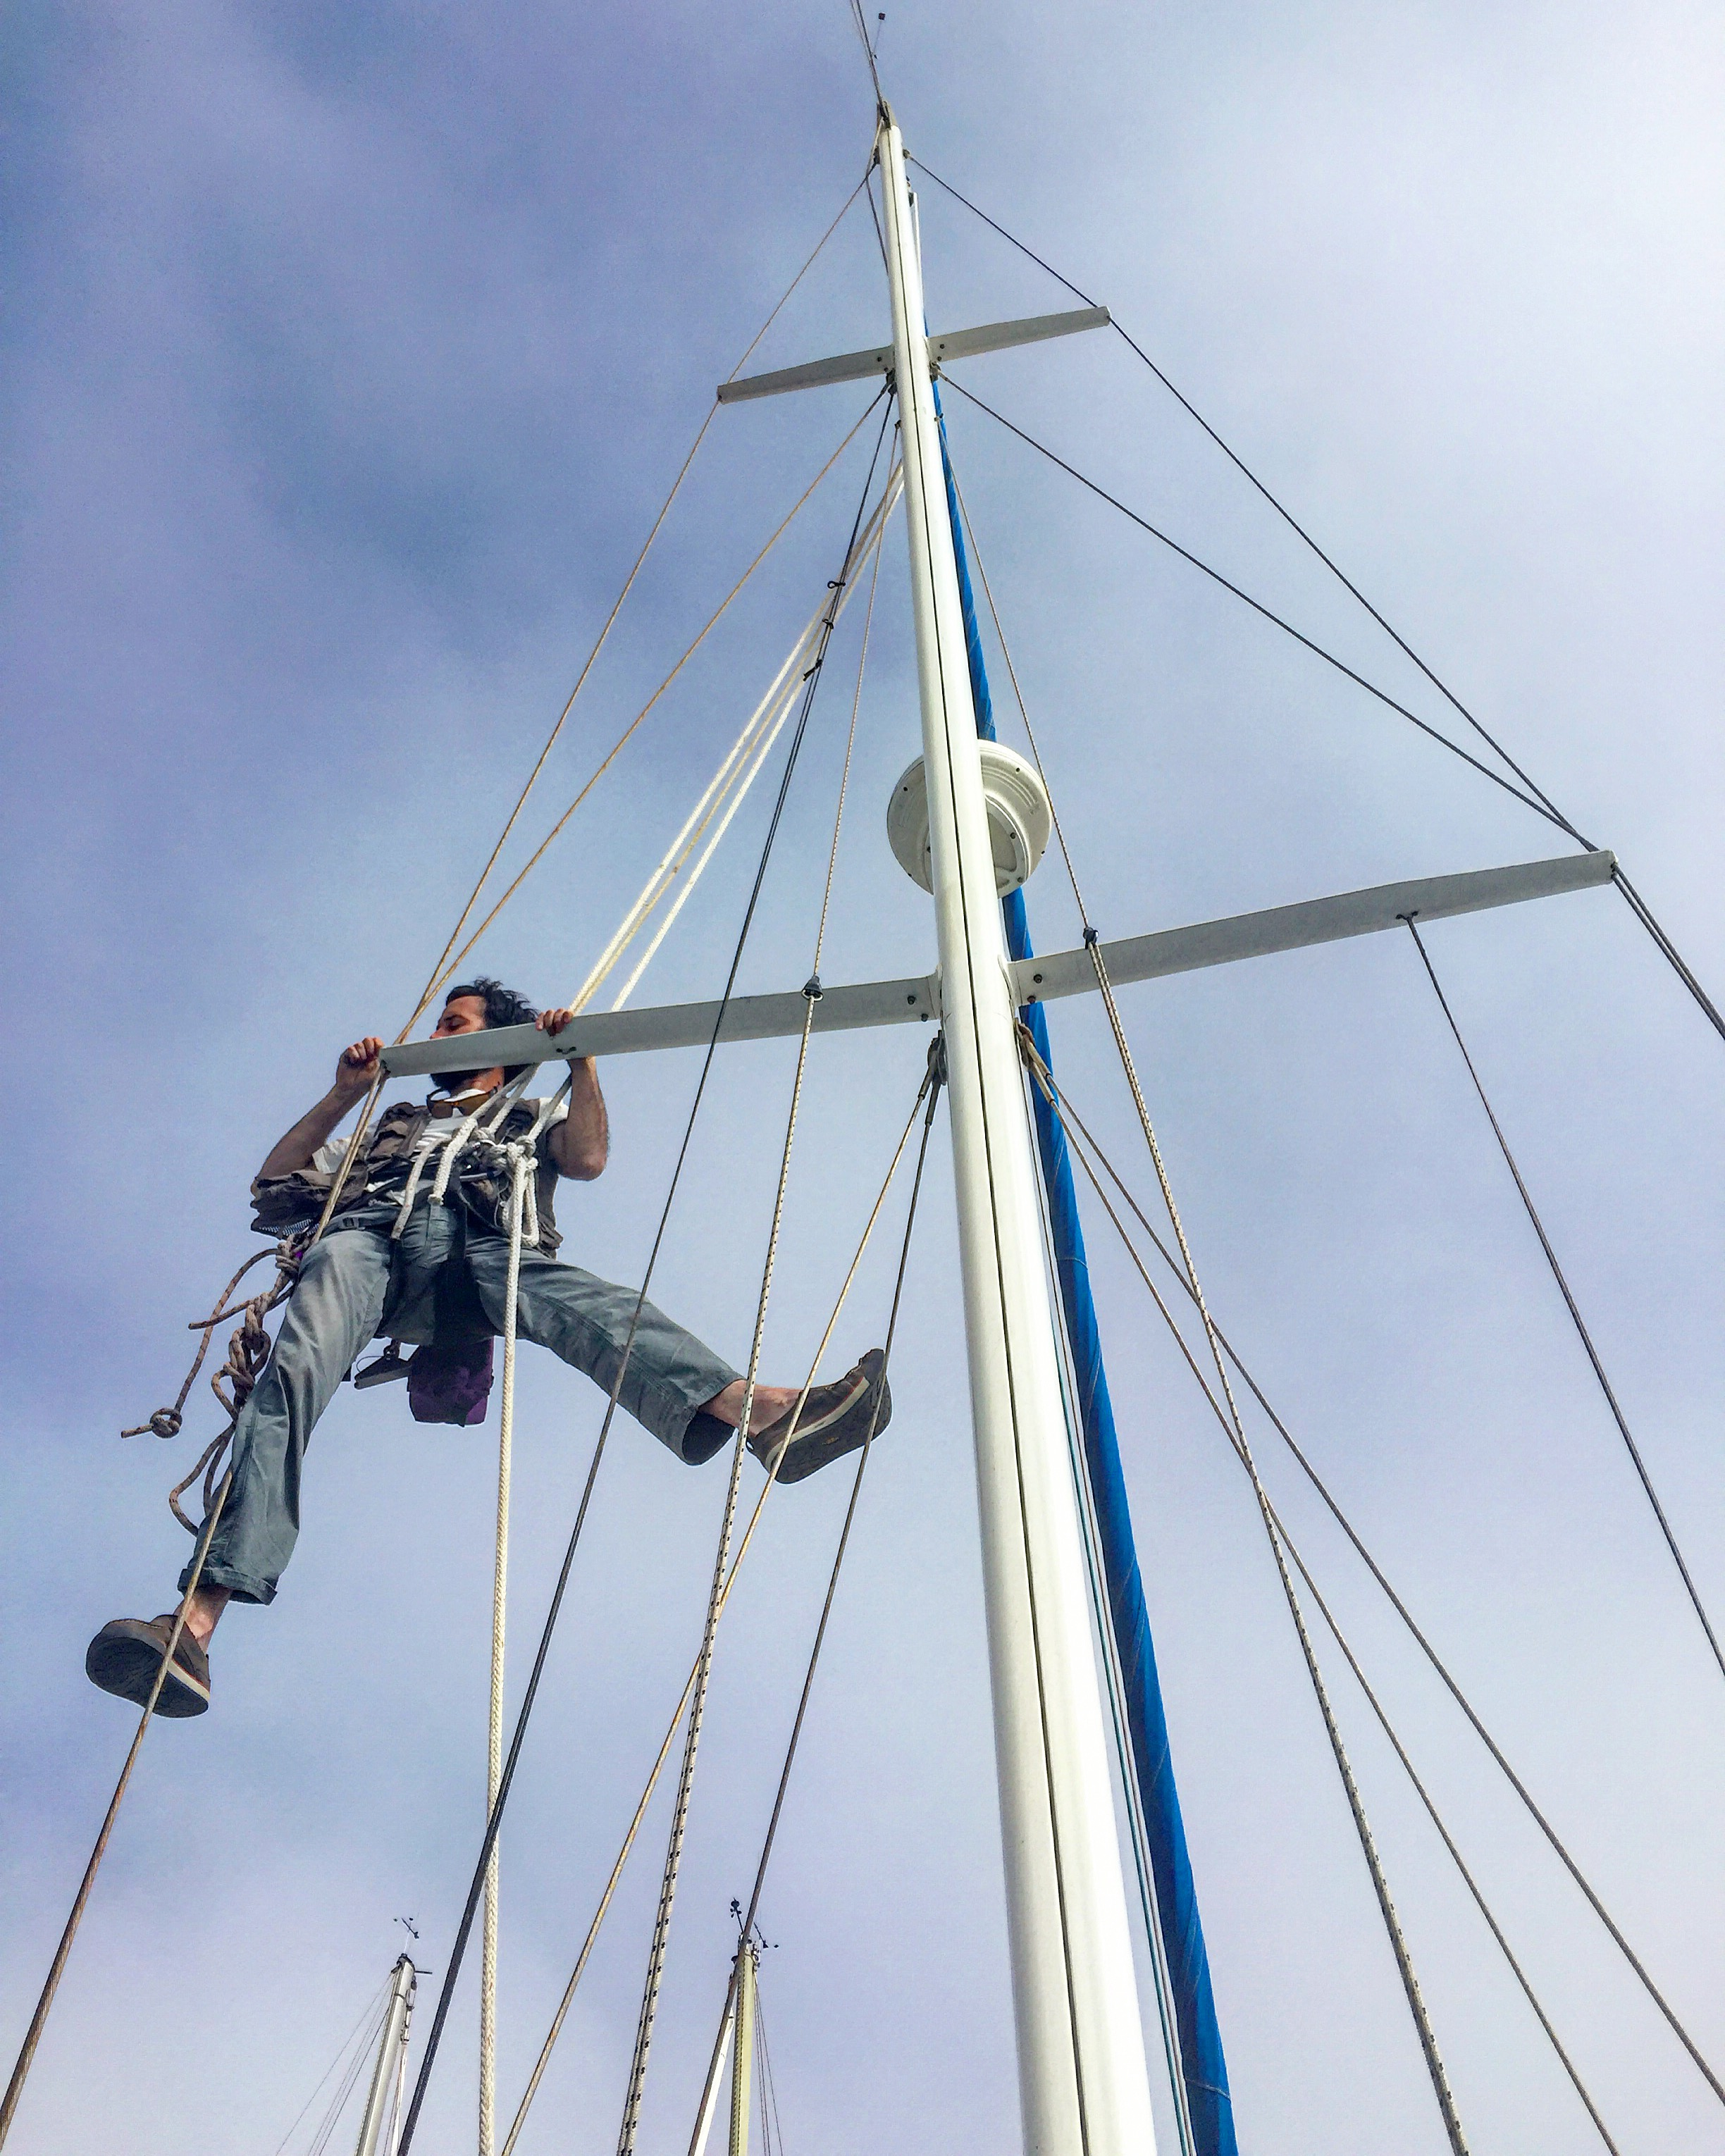 Ian inspecting our rigging.